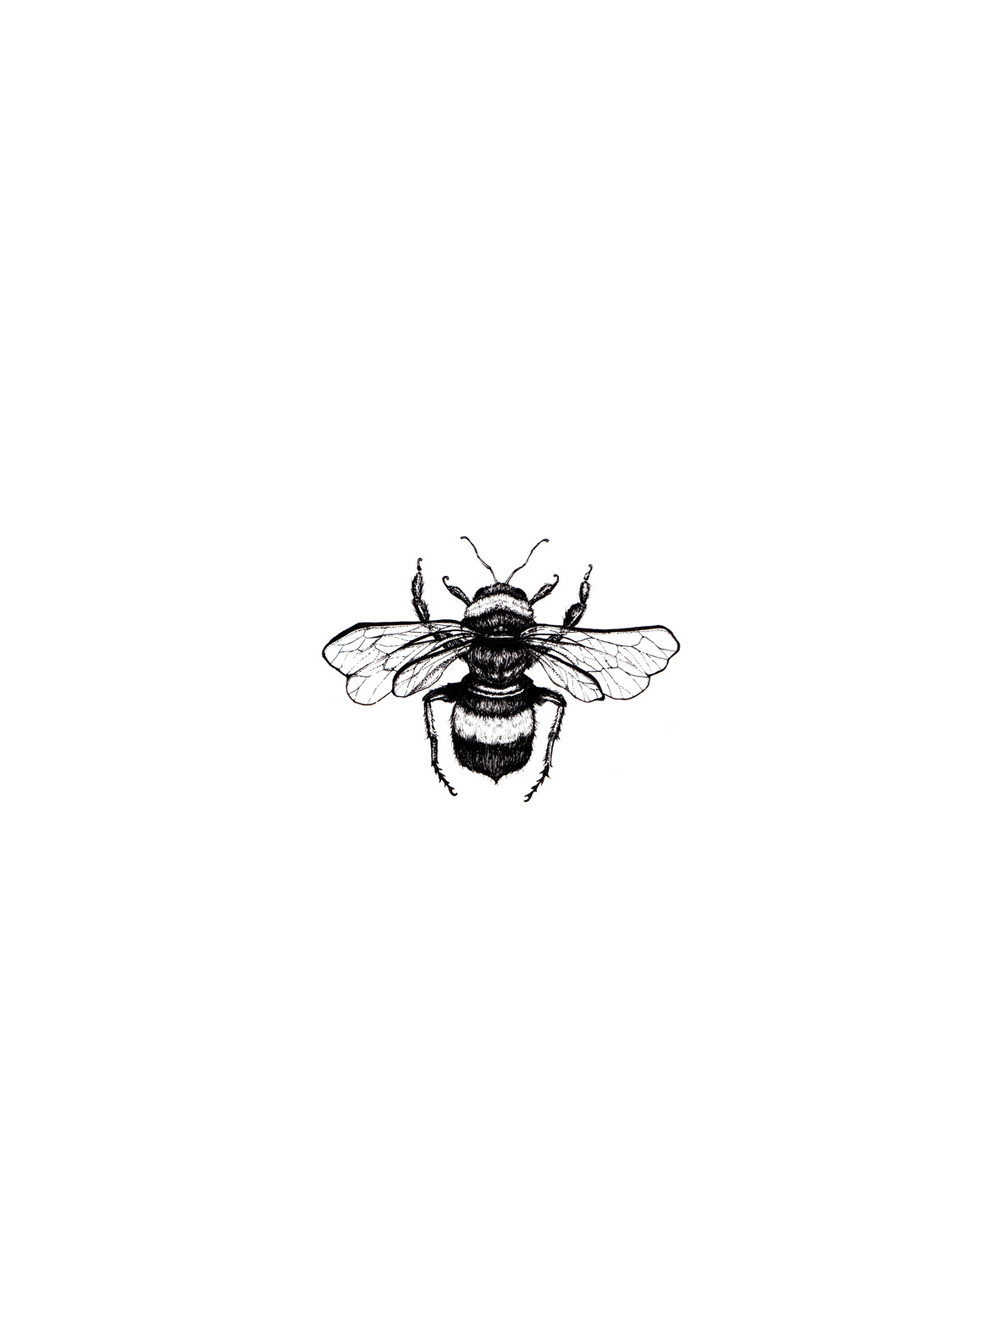 Playing Around With The Idea Of Having Some Honey Bee Wallpaper Bzz